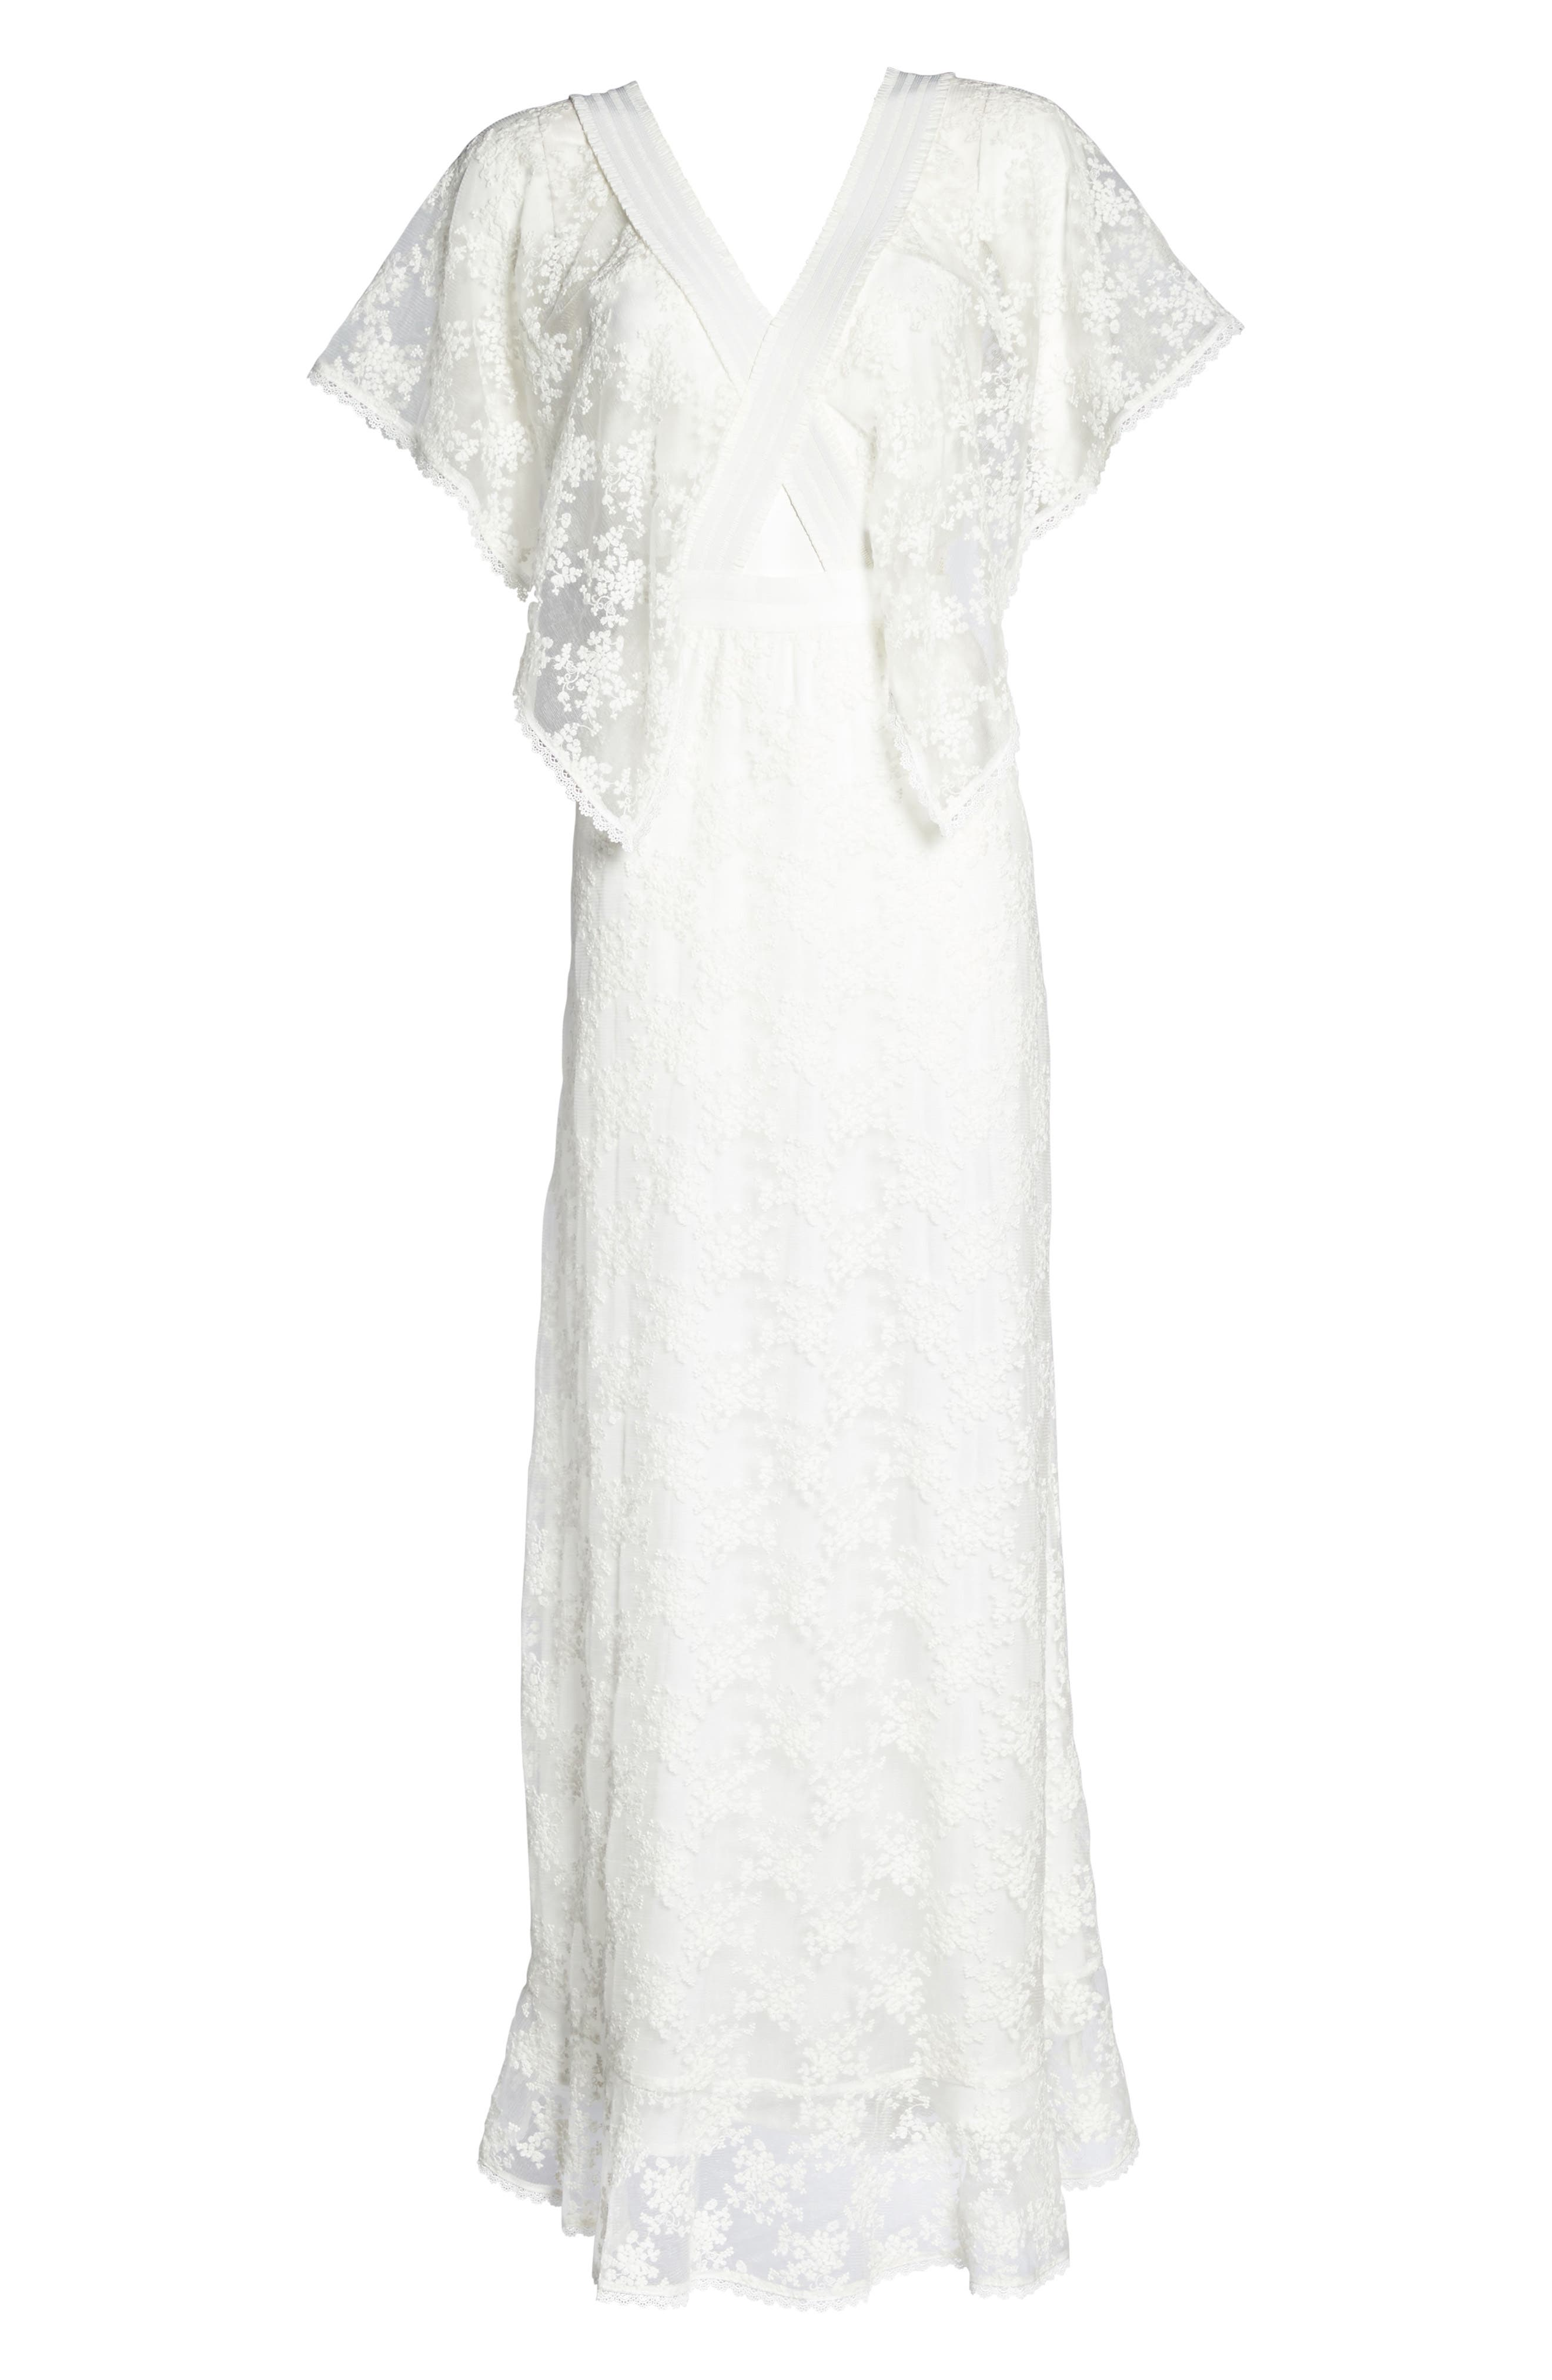 August Handkerchief Sleeve Embroidered Long Dress,                             Alternate thumbnail 6, color,                             Ivory